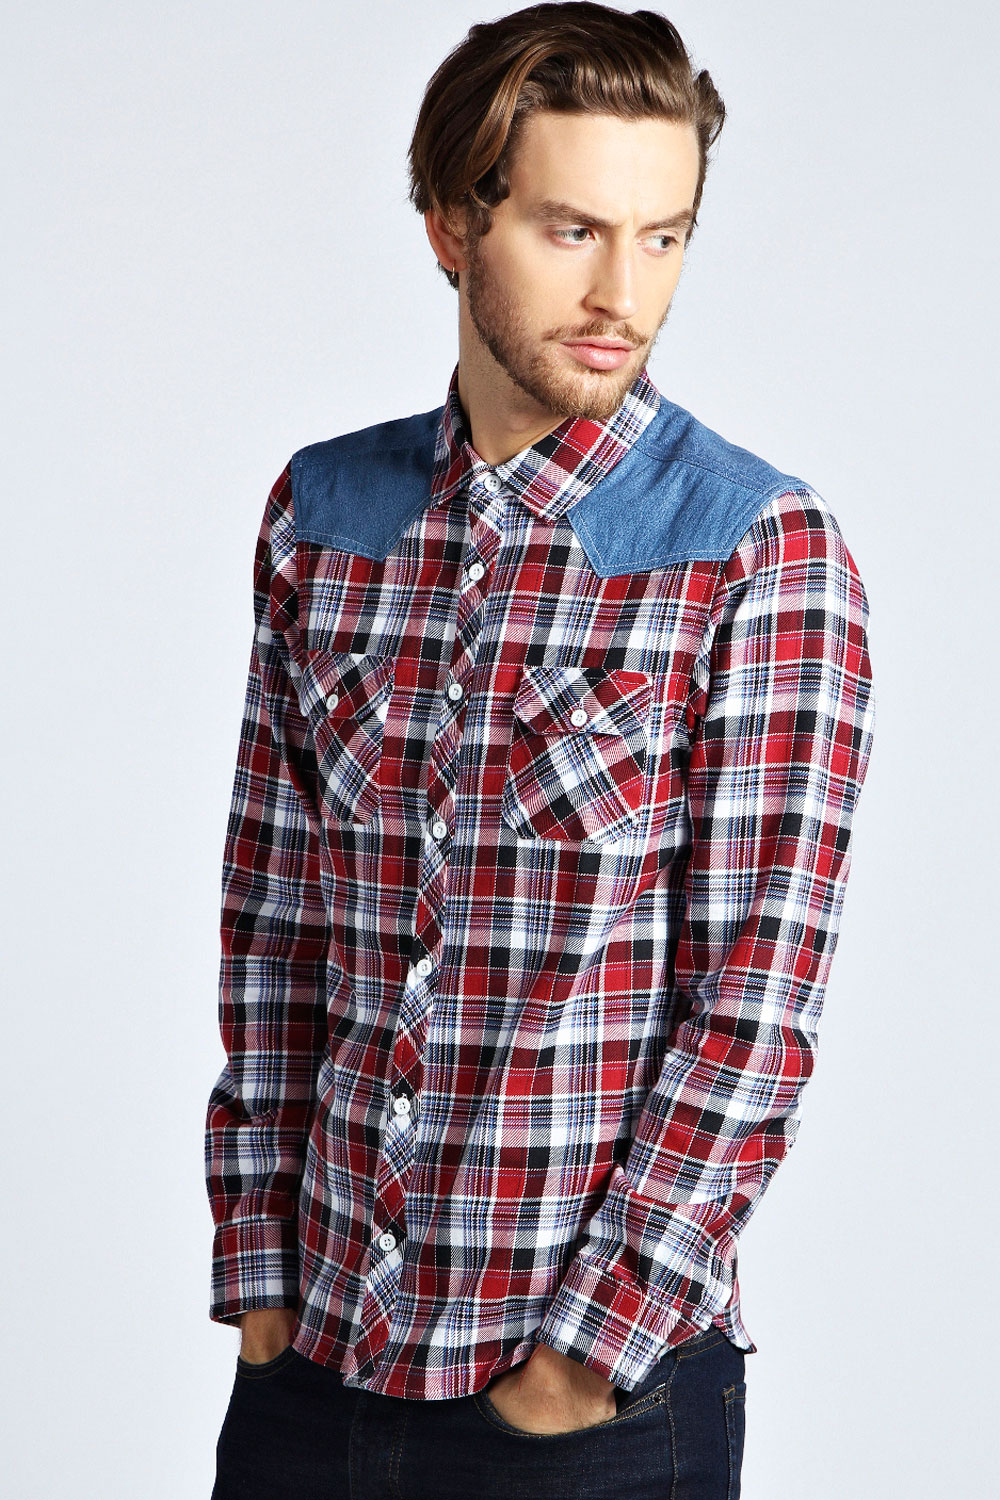 Boohoo-Mens-Long-Sleeve-Check-Shirt-With-Denim-Shoulder-Patches-in-Red